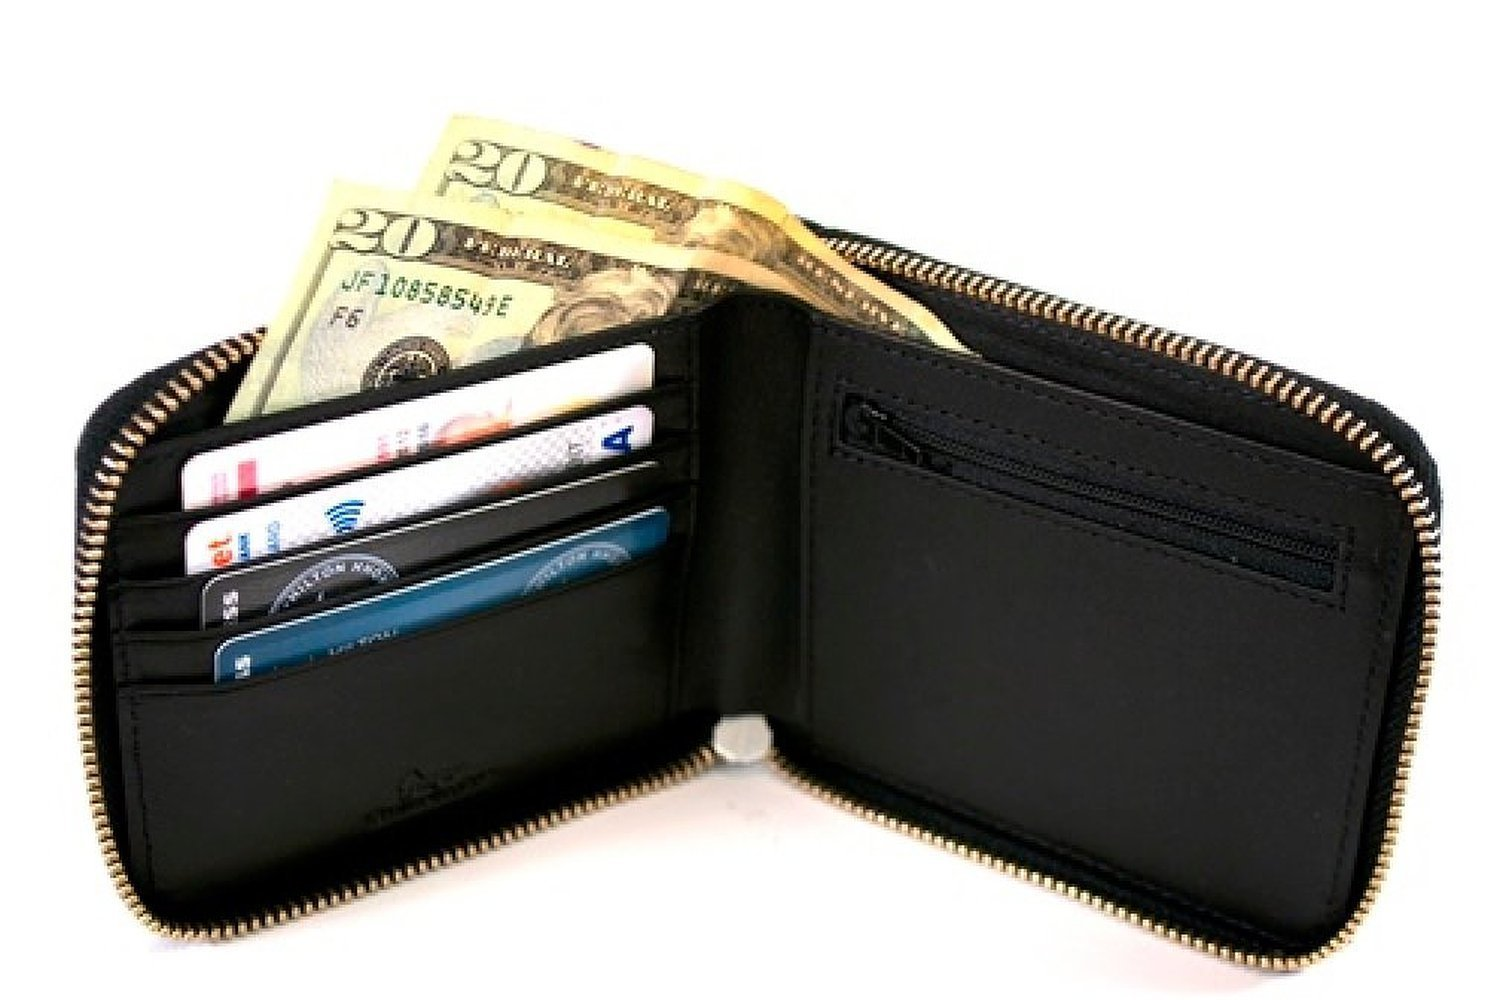 Royce Leather RFID Blocking Zip Around Wallet in Saffiano Leather, Black by Royce Leather